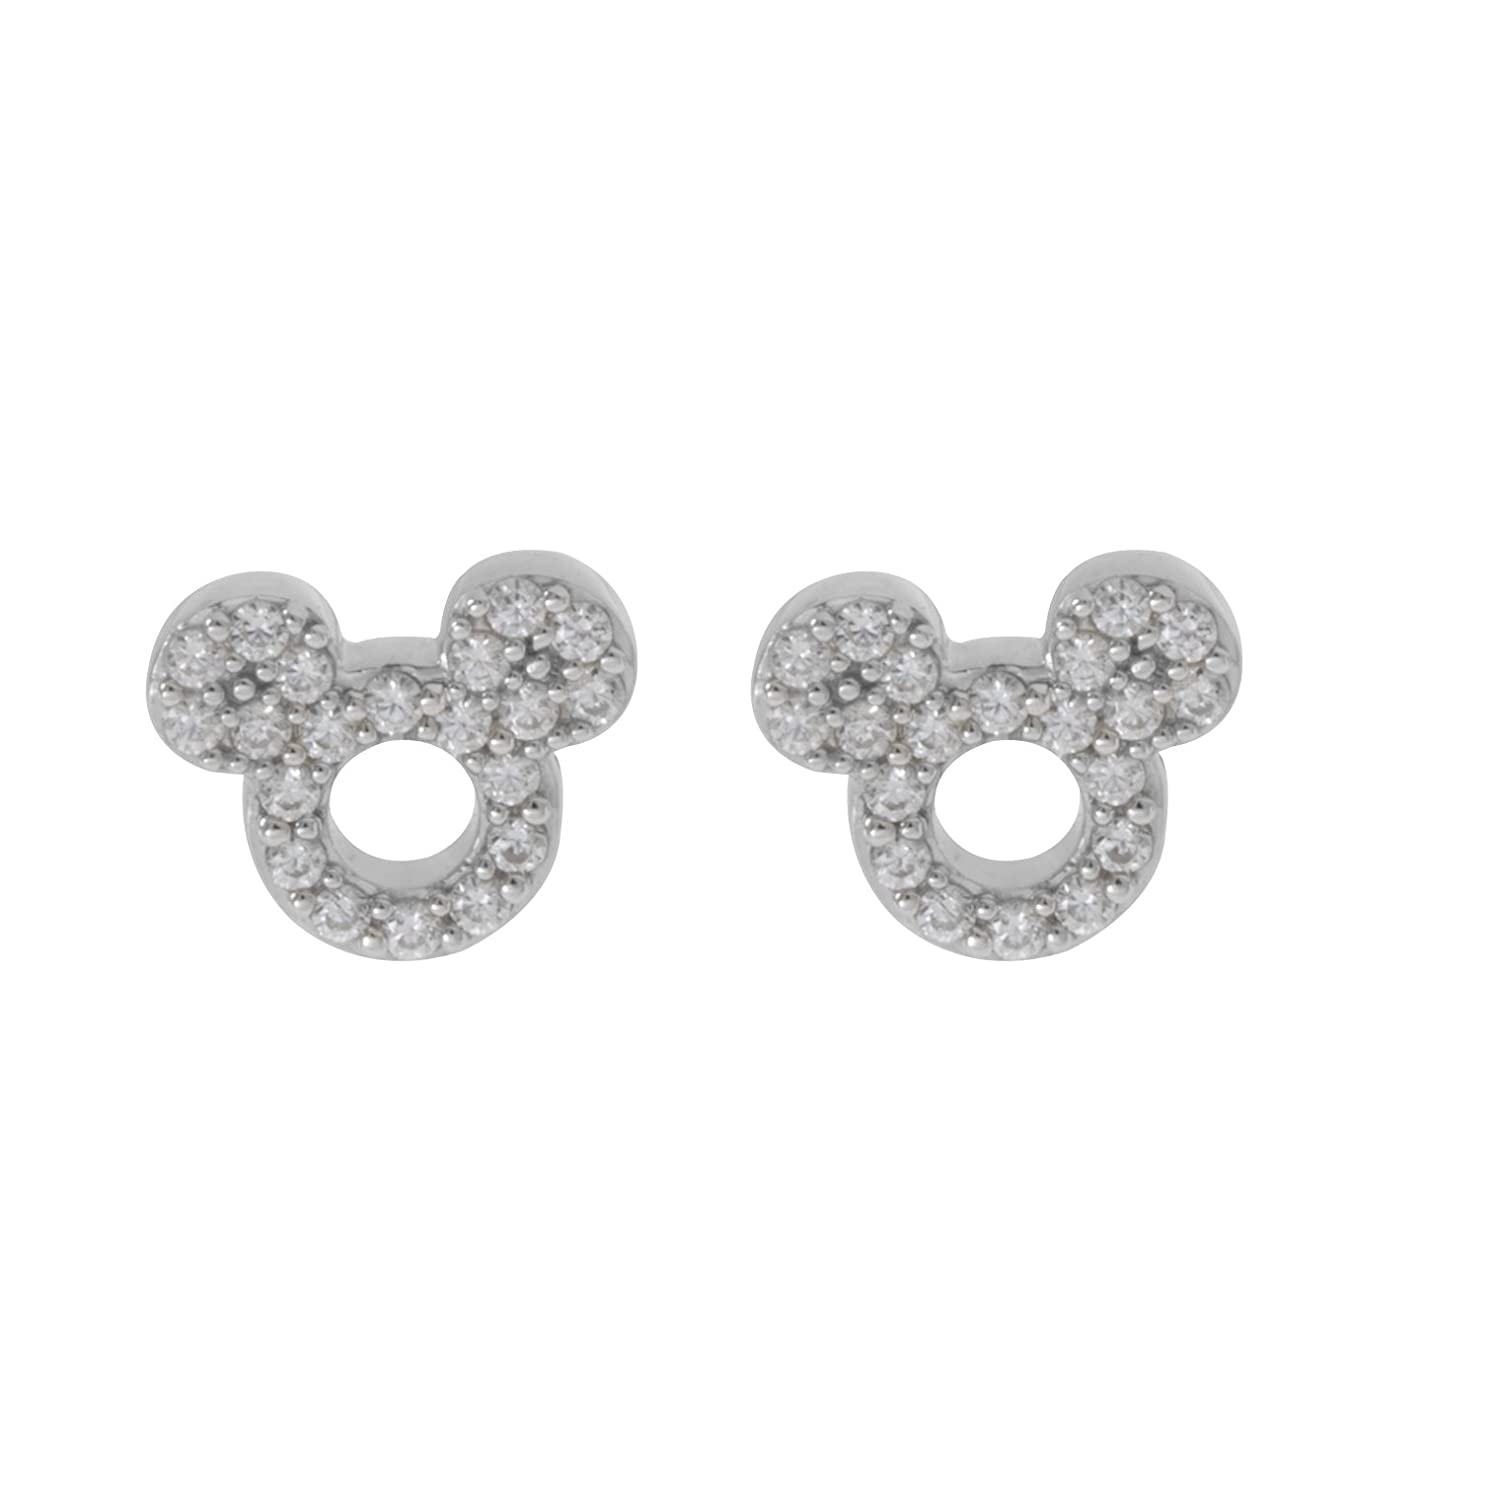 73d803be2 Amazon.com: Disney Mickey Mouse Women Jewelry, Sterling Silver Clear Cubic  Zirconia and Silver Stud Earrings Mickey's 90th Birthday Anniversary:  Jewelry